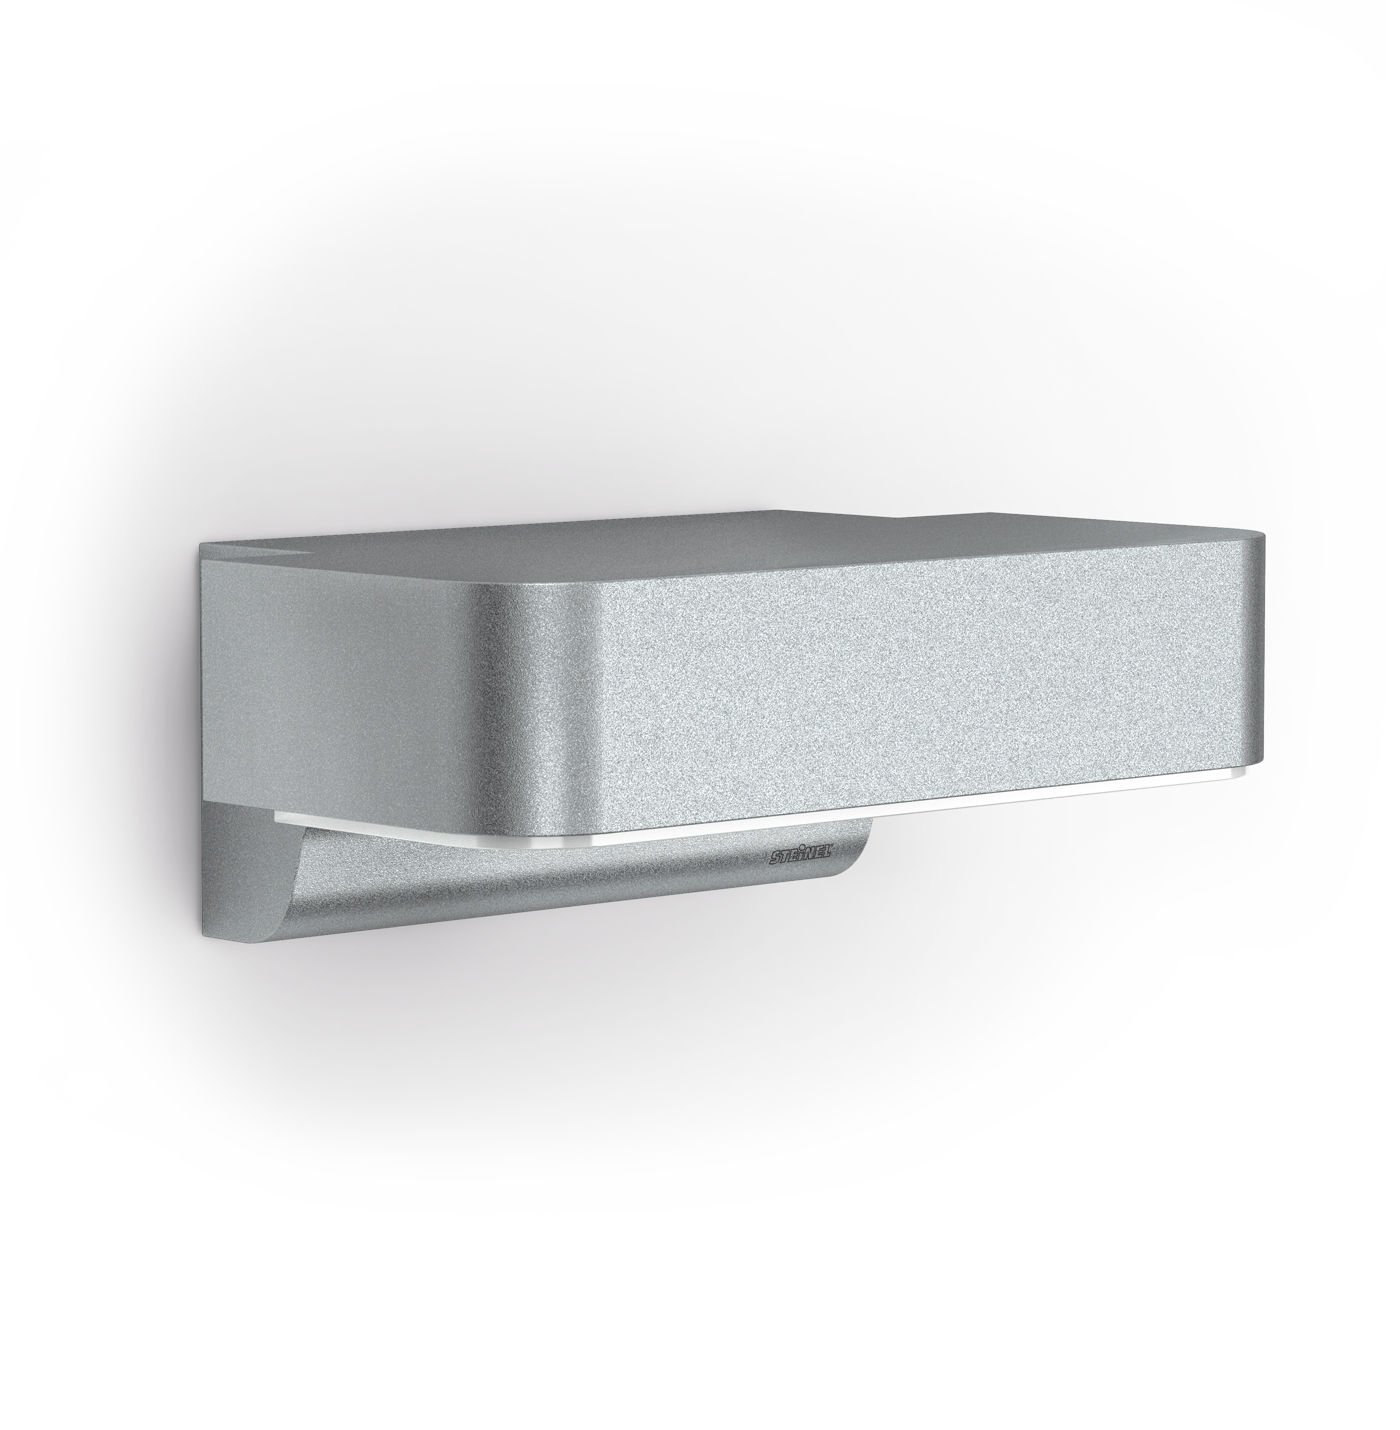 Led Buitenverlichting Led Outdoor Wall Lights - Enhance The Architectural